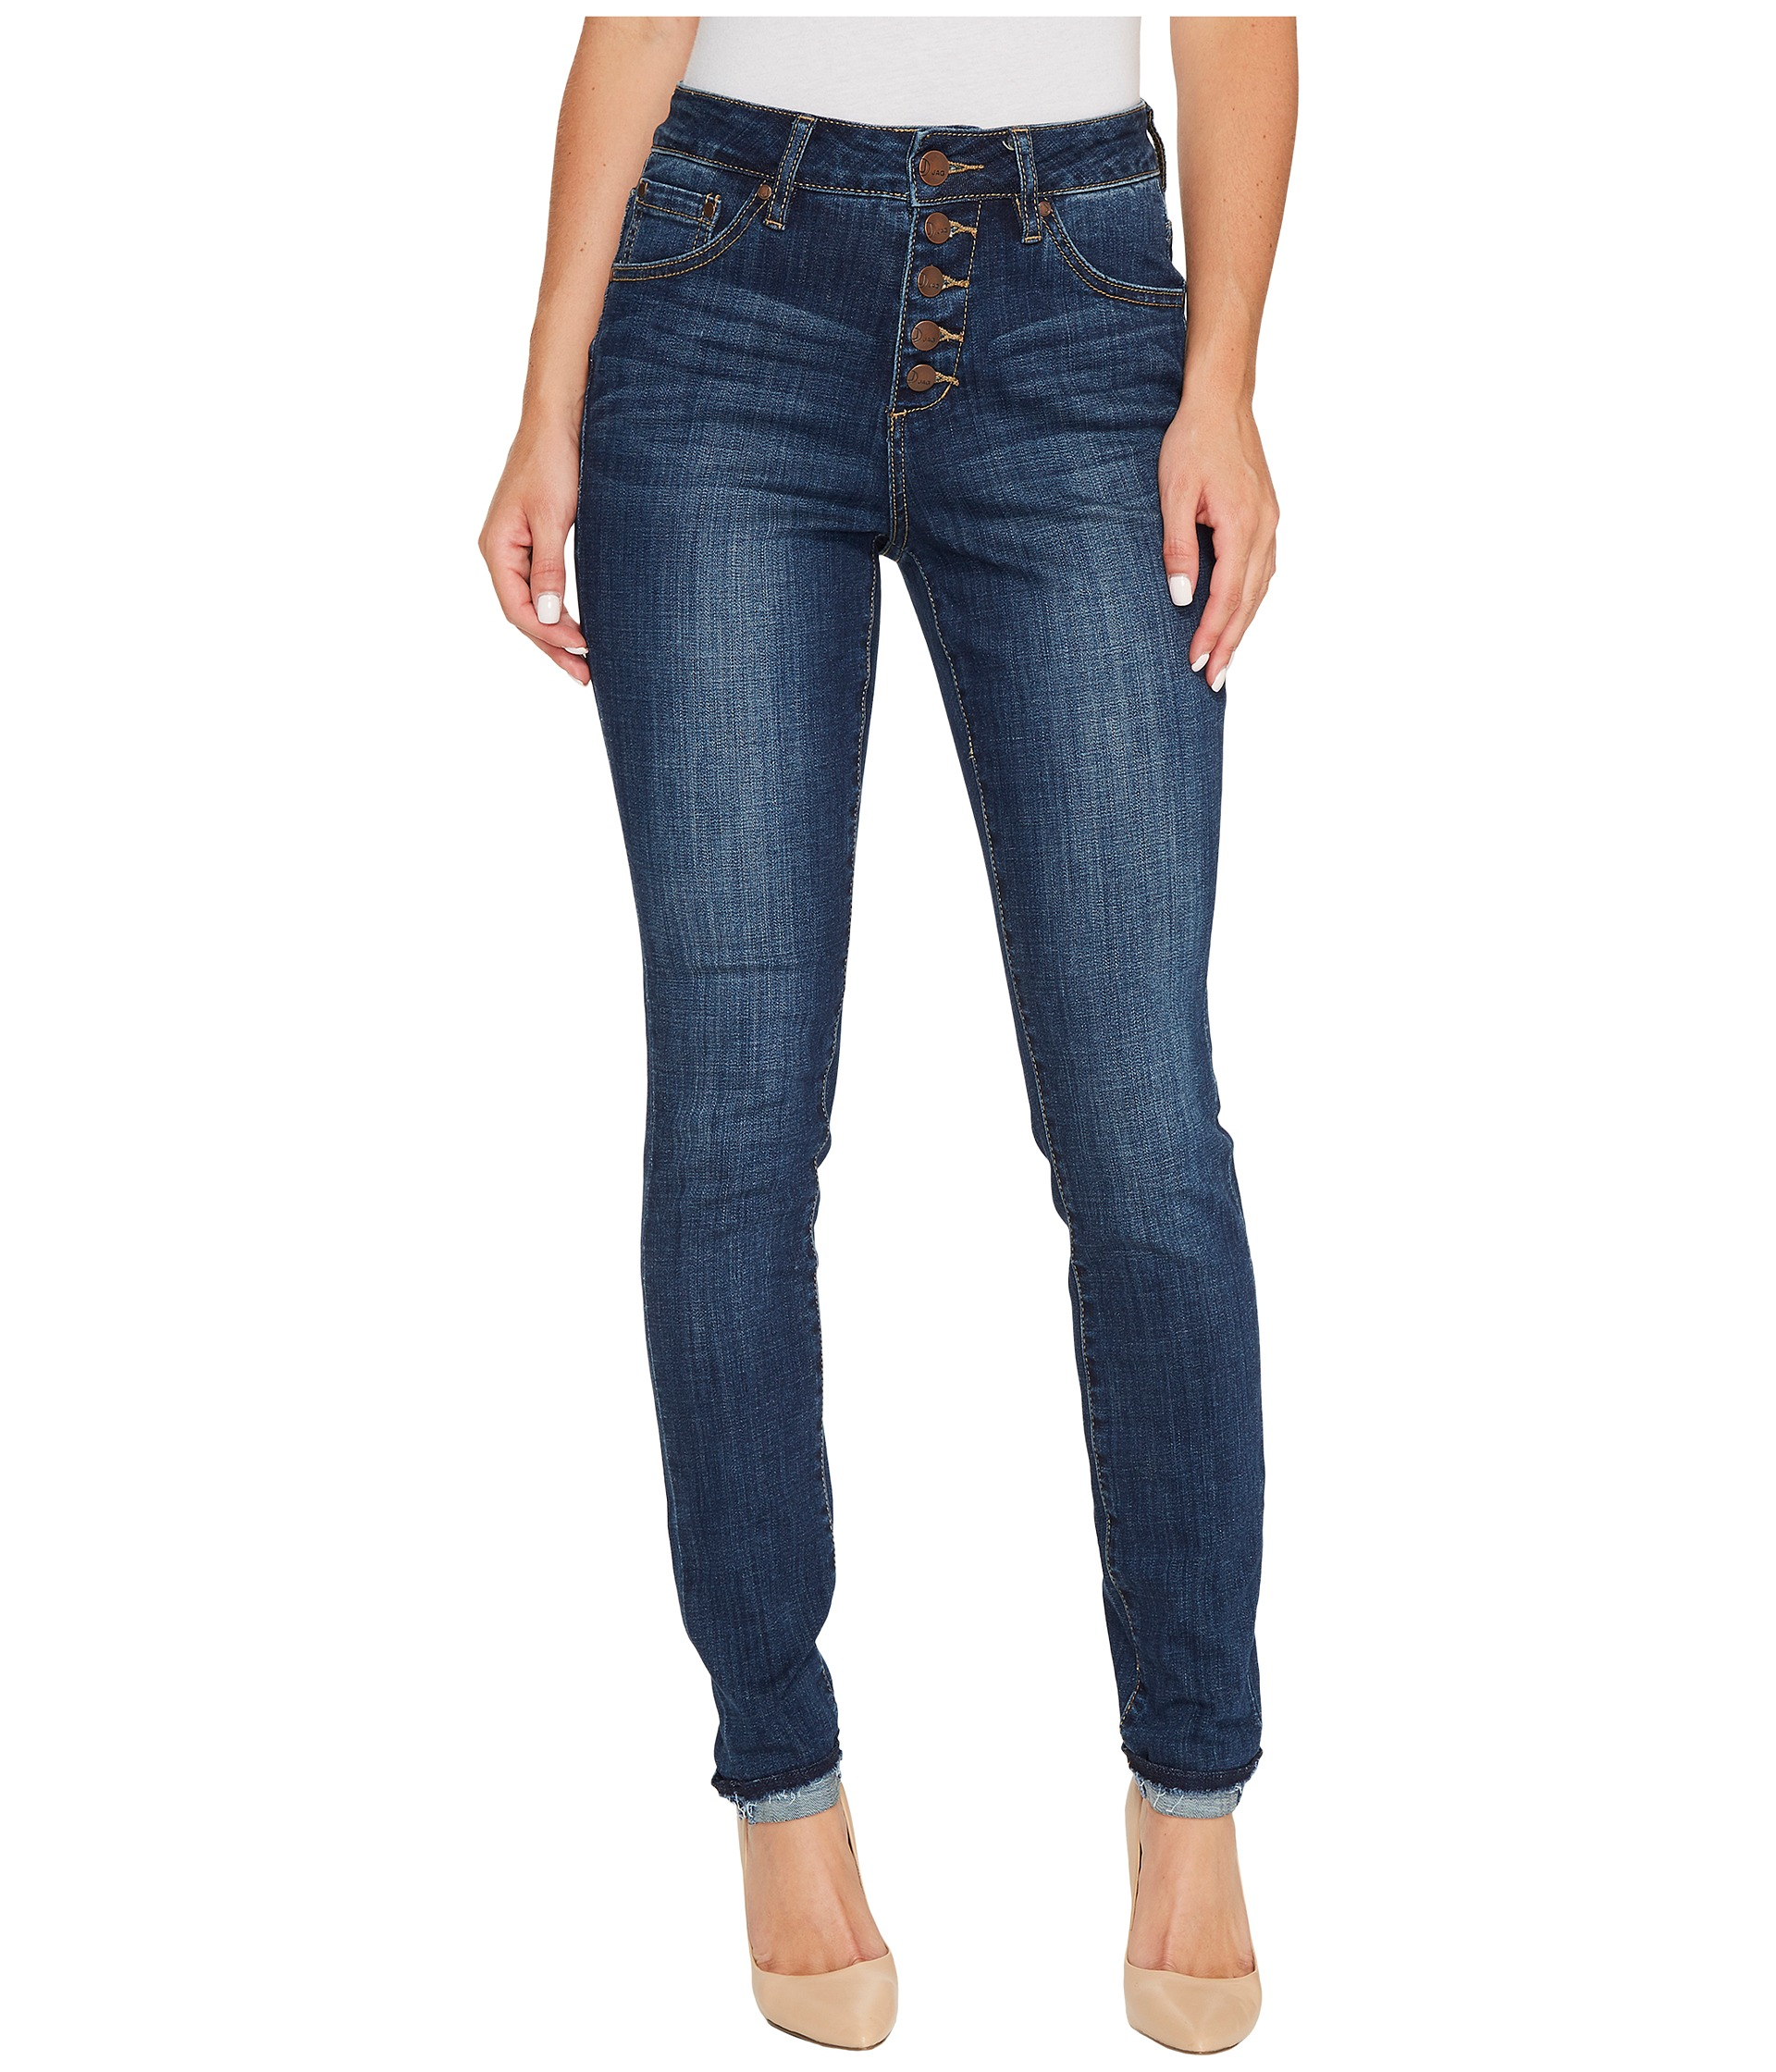 Jag Jeans Gwen Skinny High-Rise Jeans in Crosshatch Denim in Thorne Blue at Zappos.com